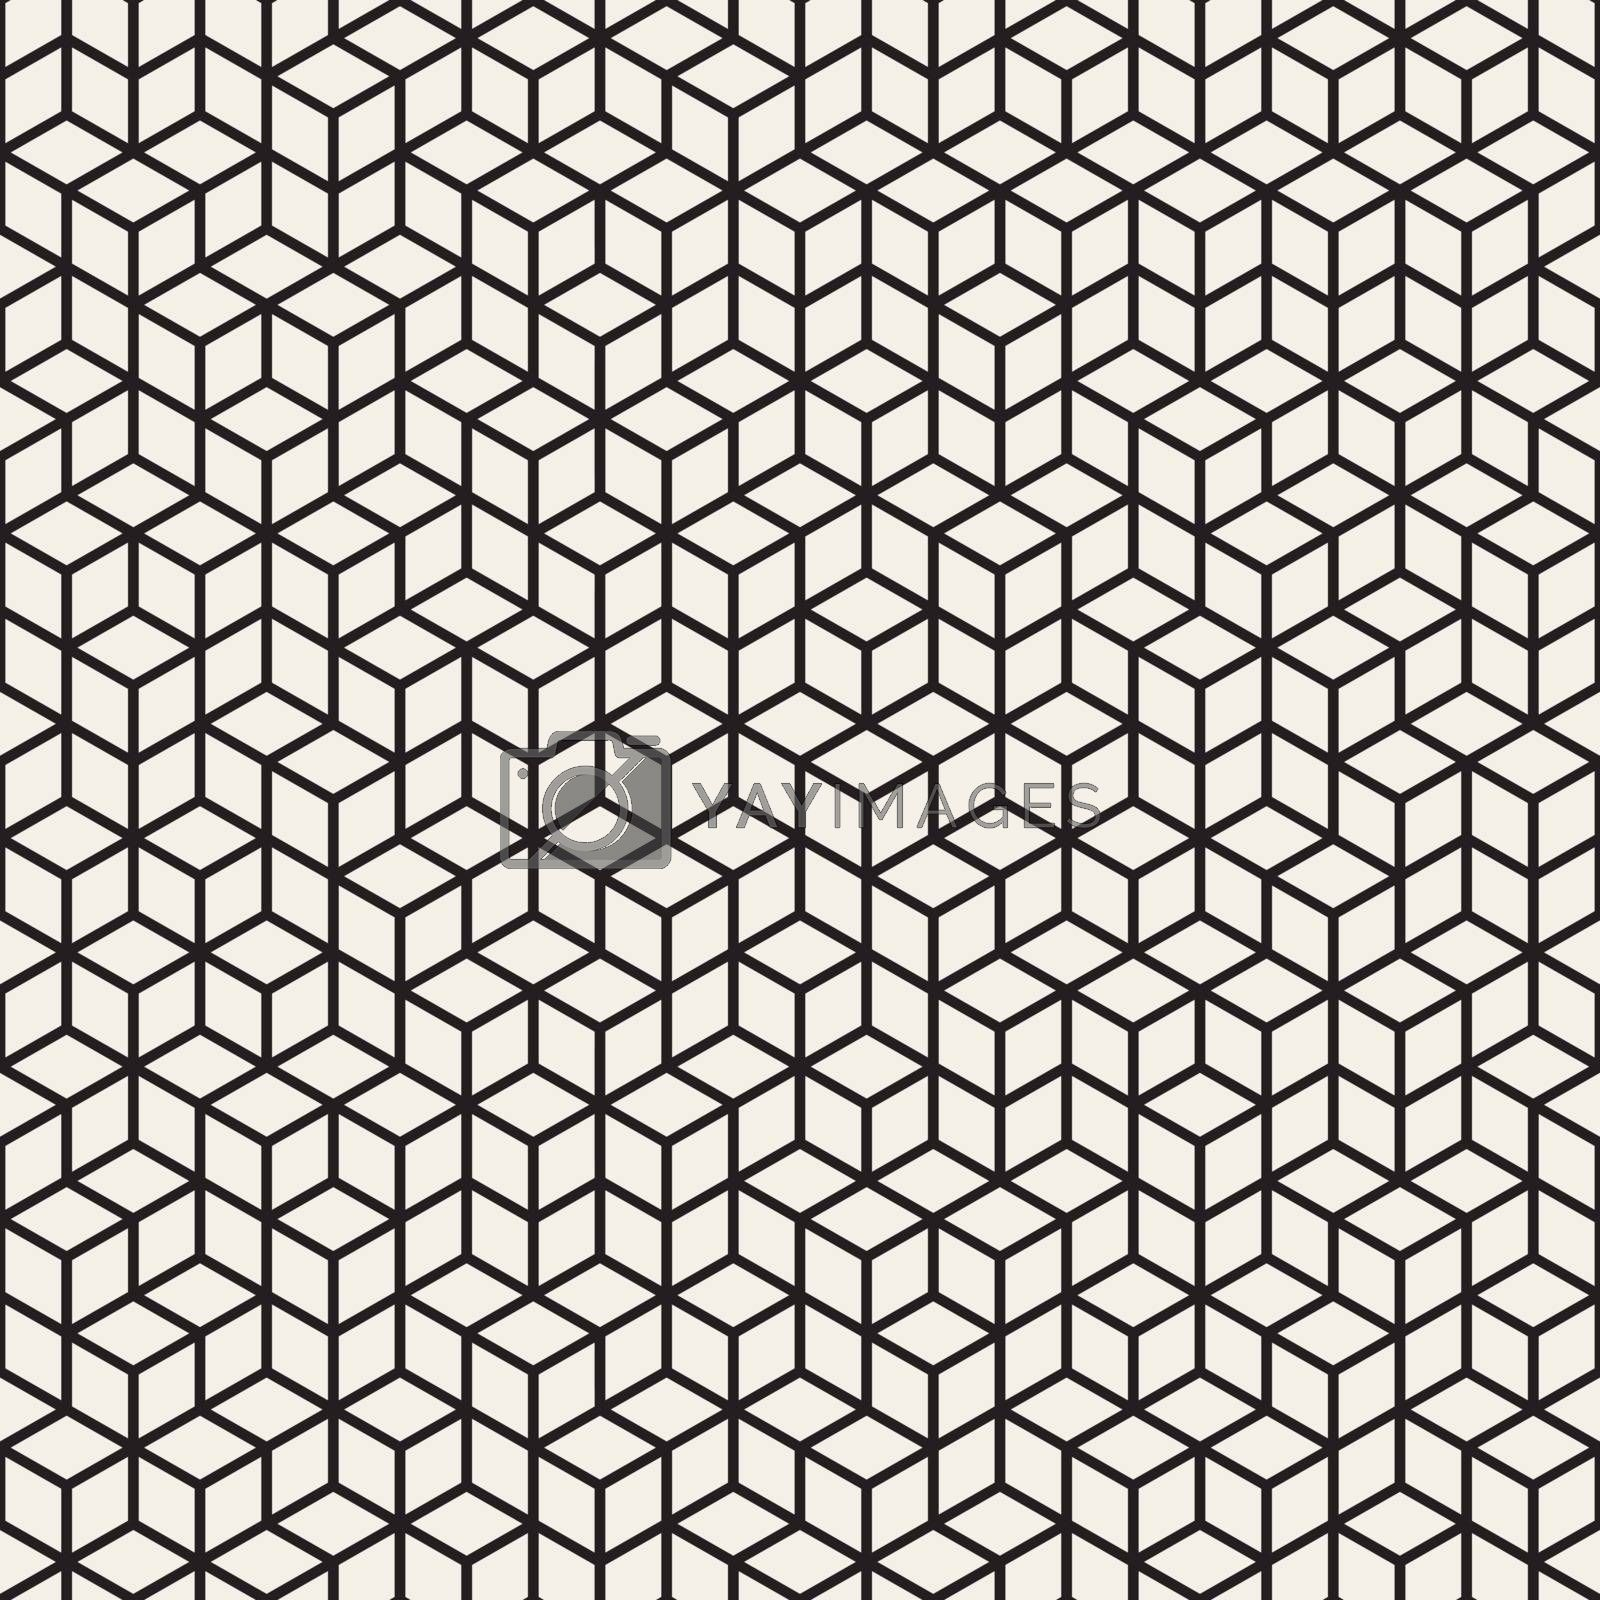 Vector Seamless Black and White Irregular Rhombus Grid Pattern. Abstract Geometric Background Design